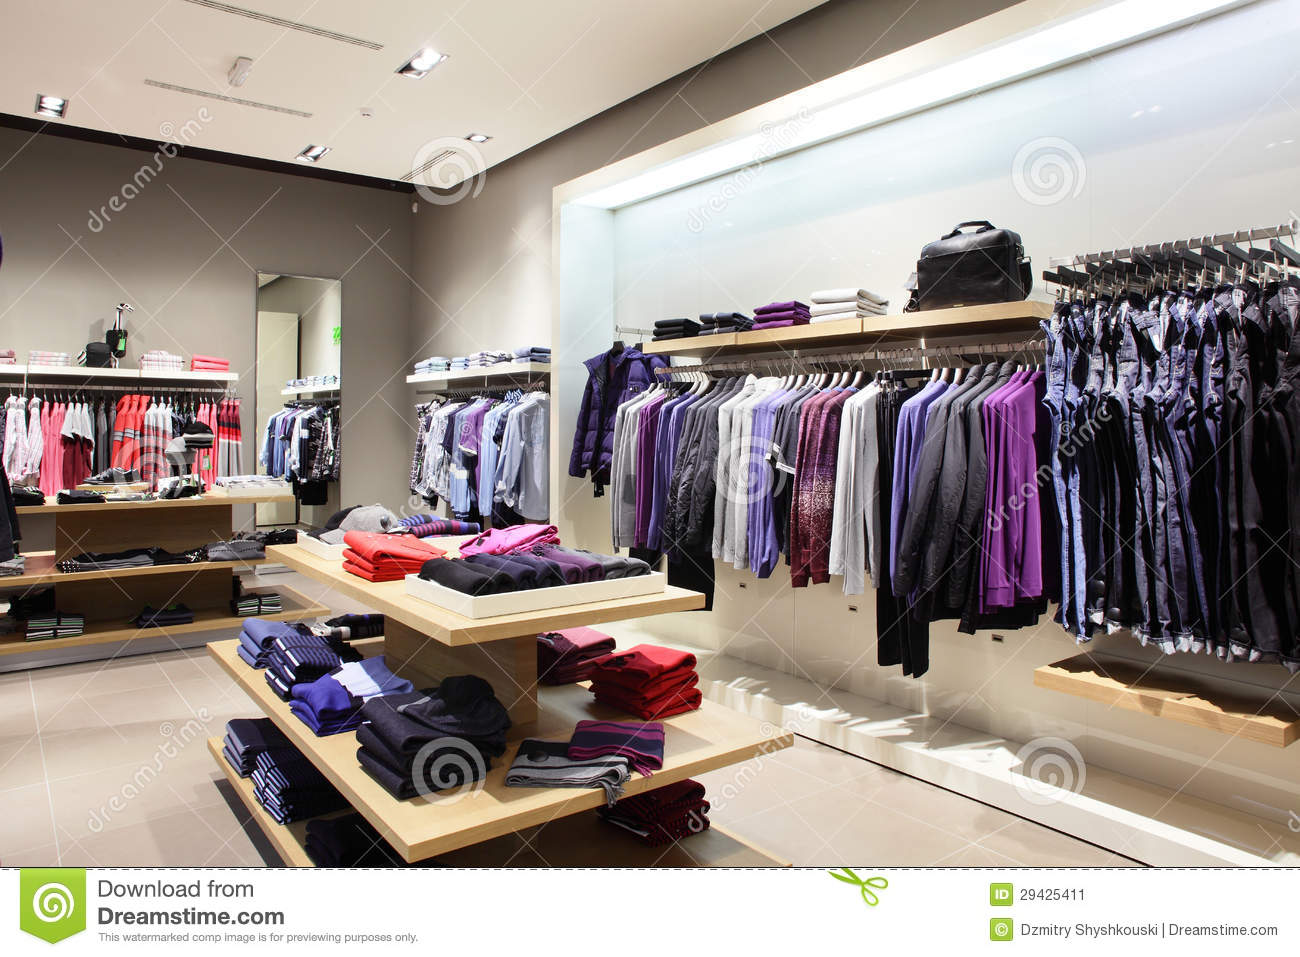 Magasin de mode. Clothing (Brand) Community See All. 42 people like this. 42 people follow this. About See All. Clothing (Brand) People. 42 likes. Related Pages. Mode homme 'magasin de vêtement pour hommes' Baby Goods/Kids Goods. Berea fvm yasho. Movie Theater. Educational quotes. Just For Fun.